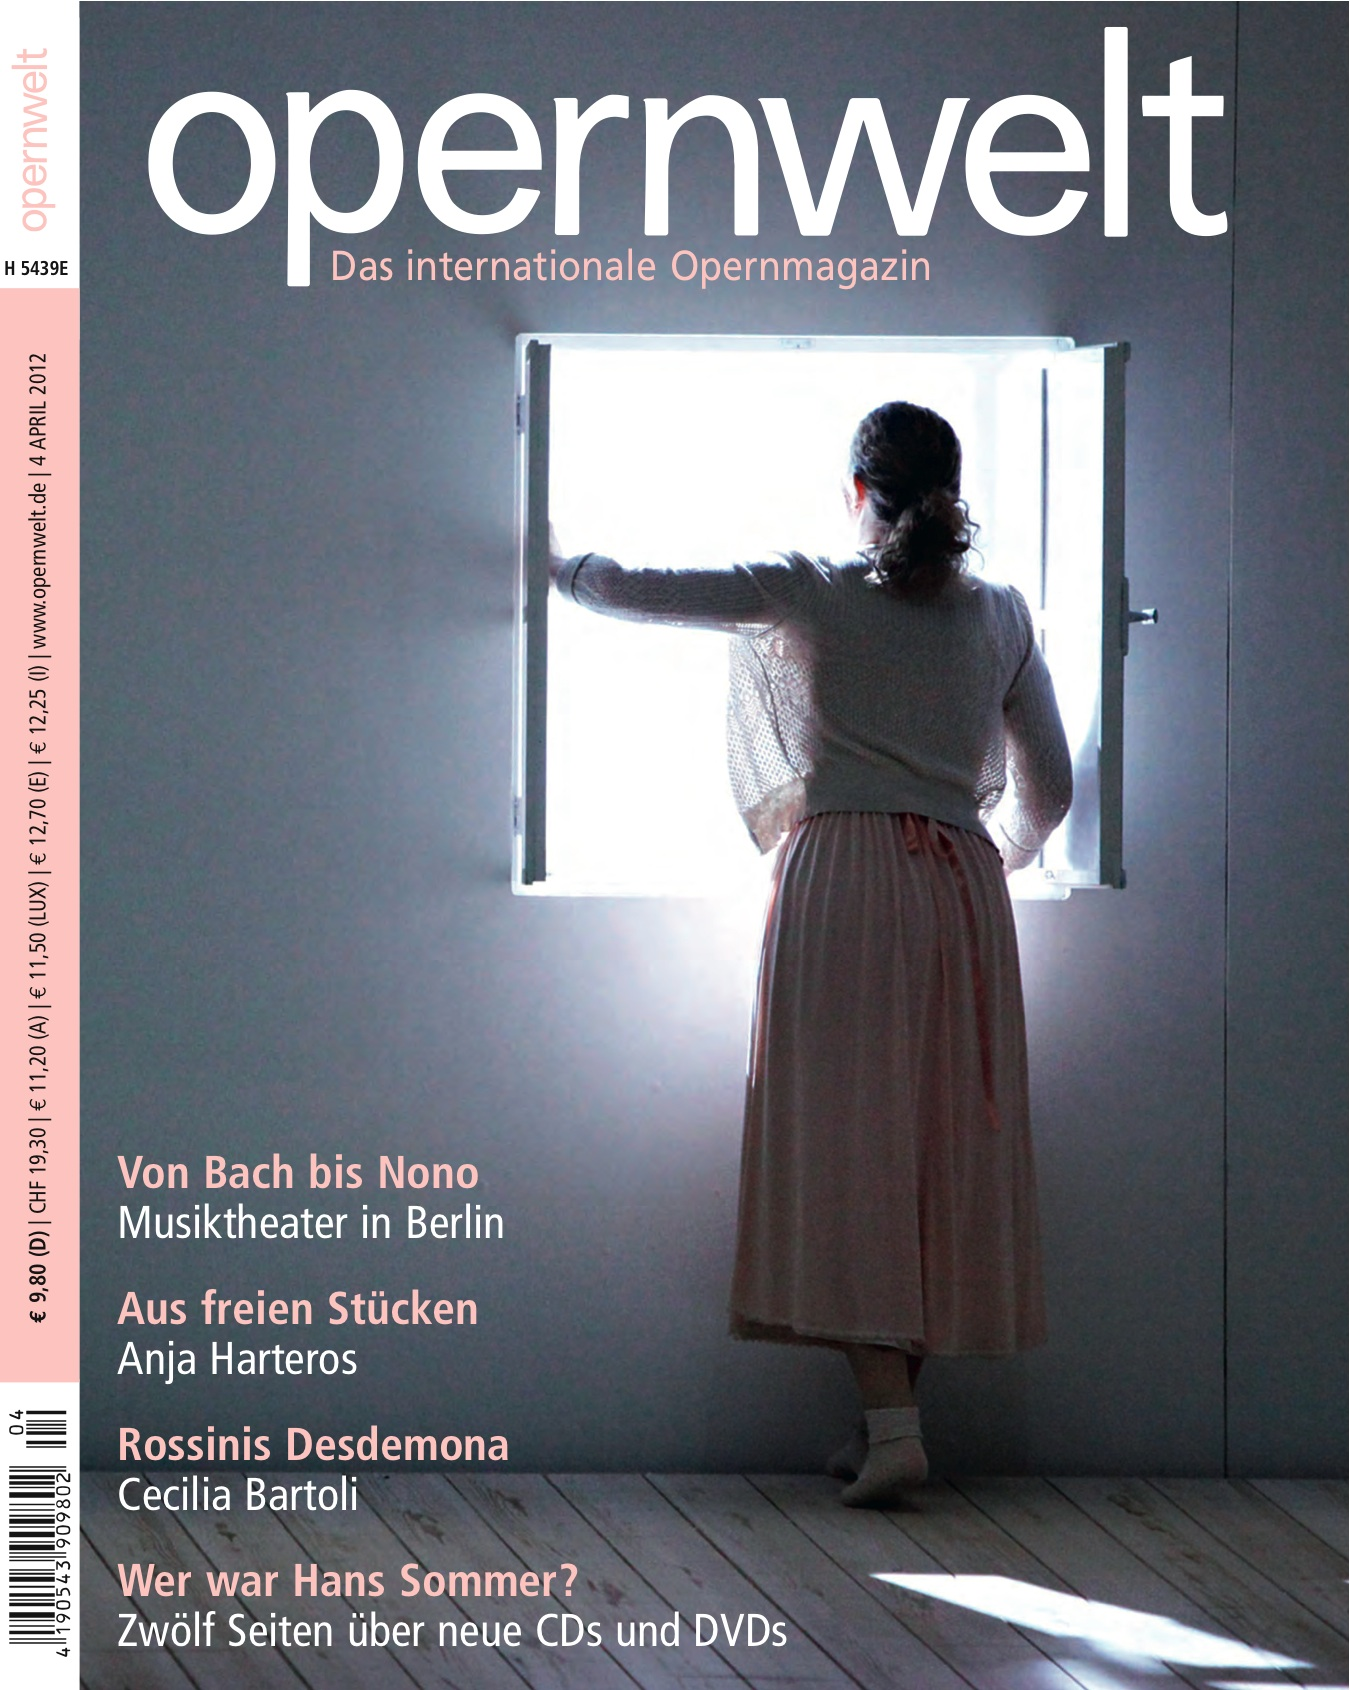 Opernwelt April (4/2012)